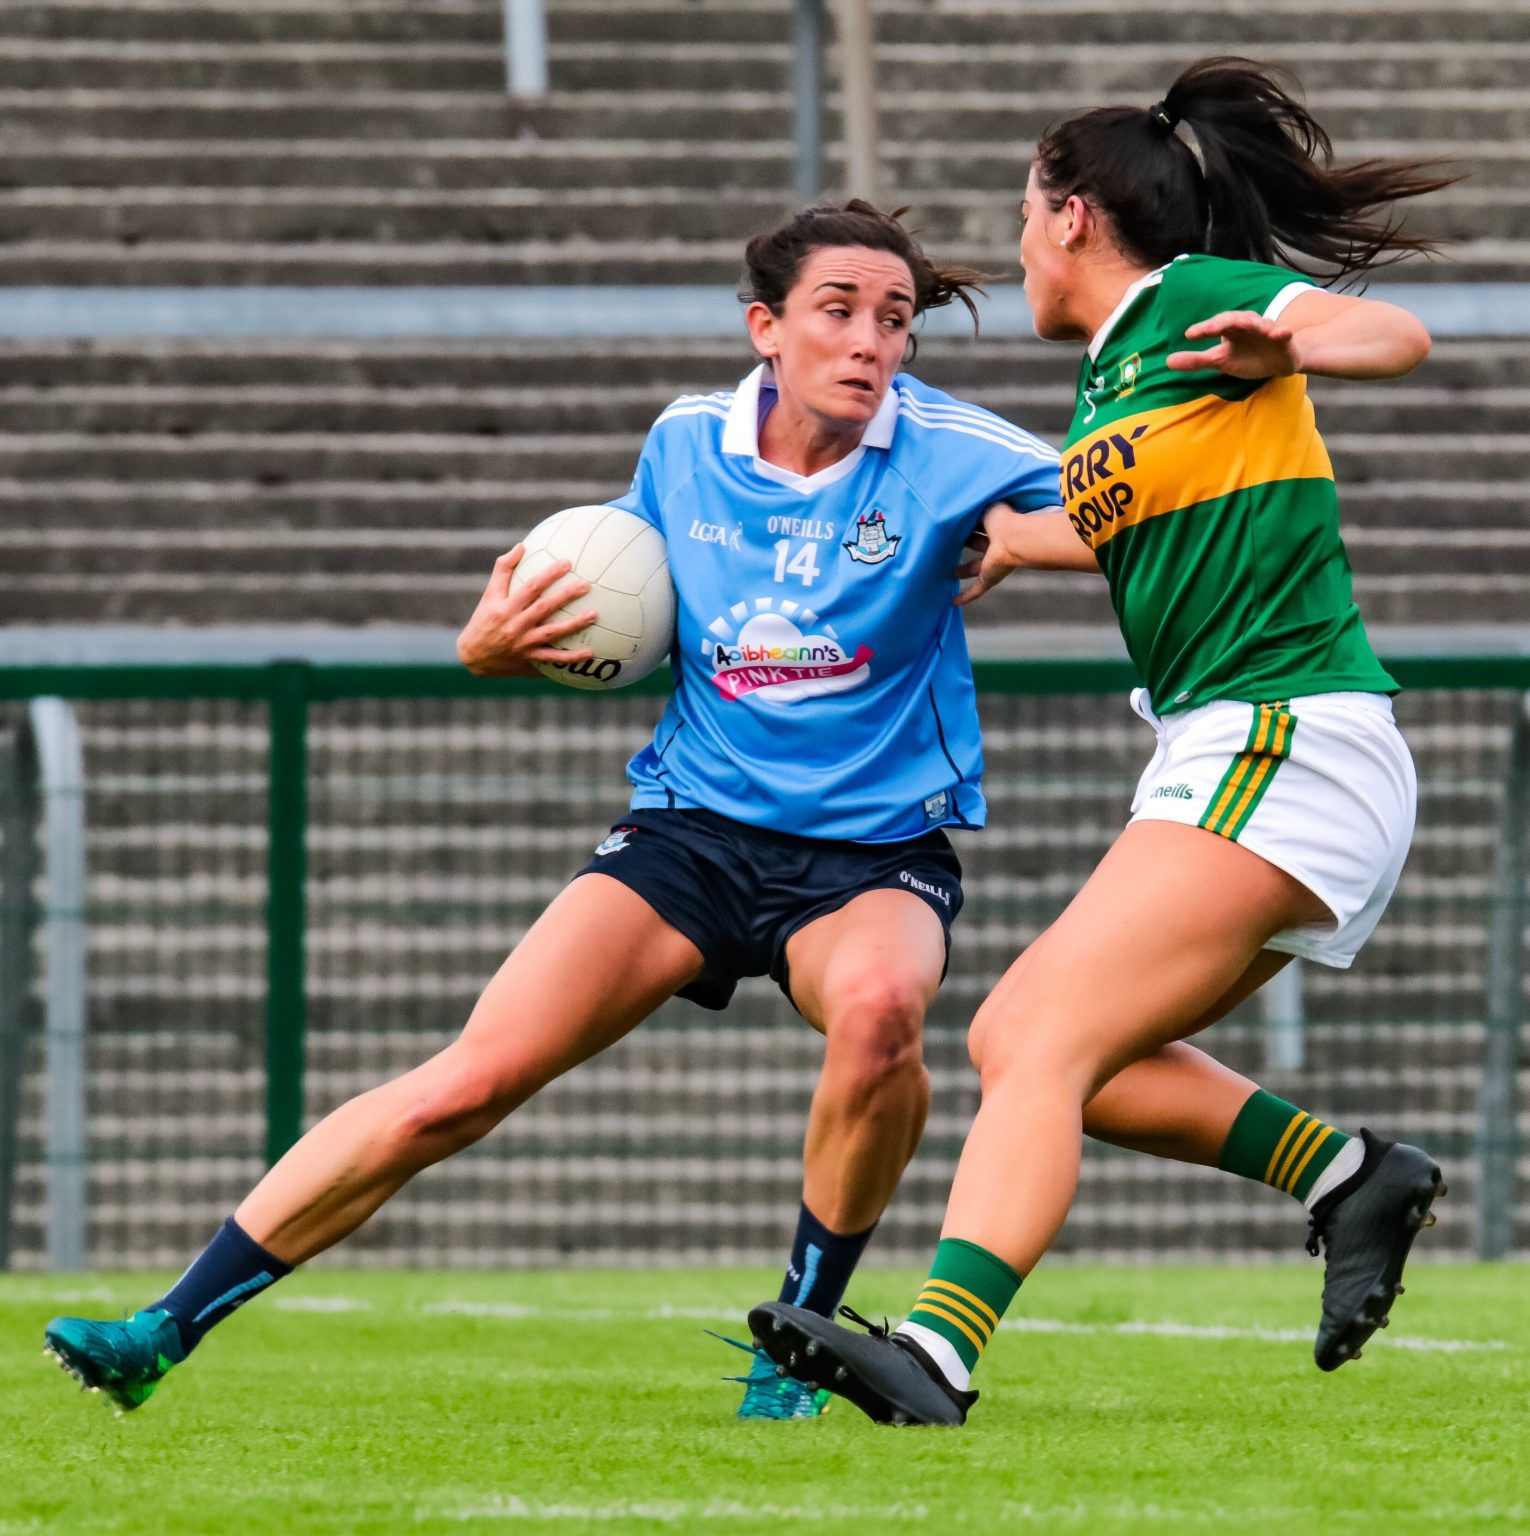 A Dublin Ladies footballer in a sky blue jersey and navy shorts evades a tackle from a Kerry player in a green jersey and white shorts